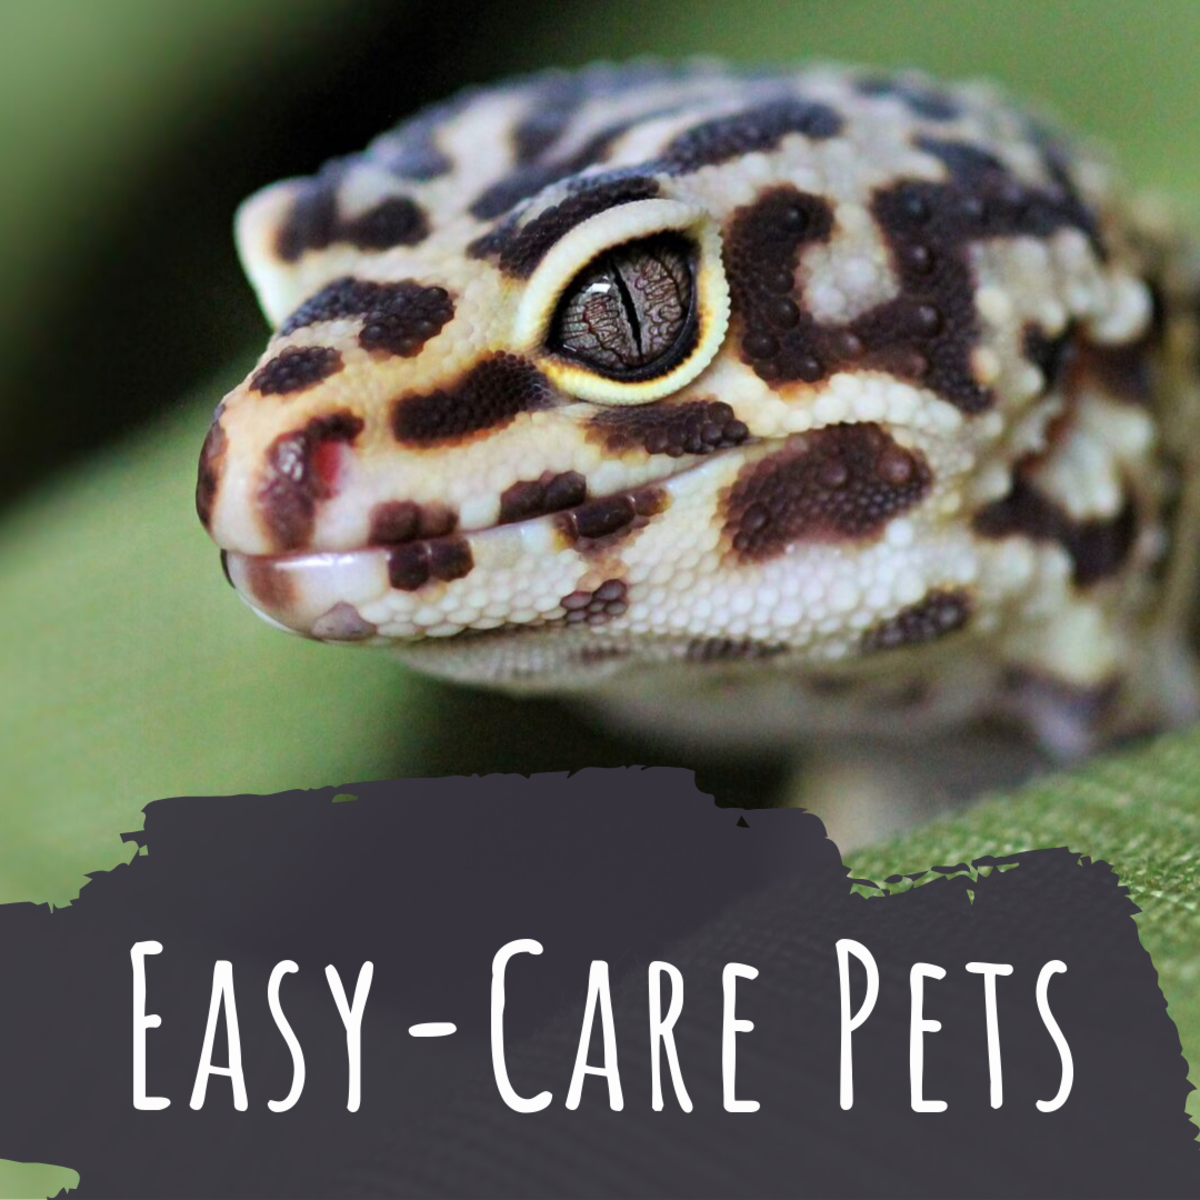 Which pets are the easiest to take care of?